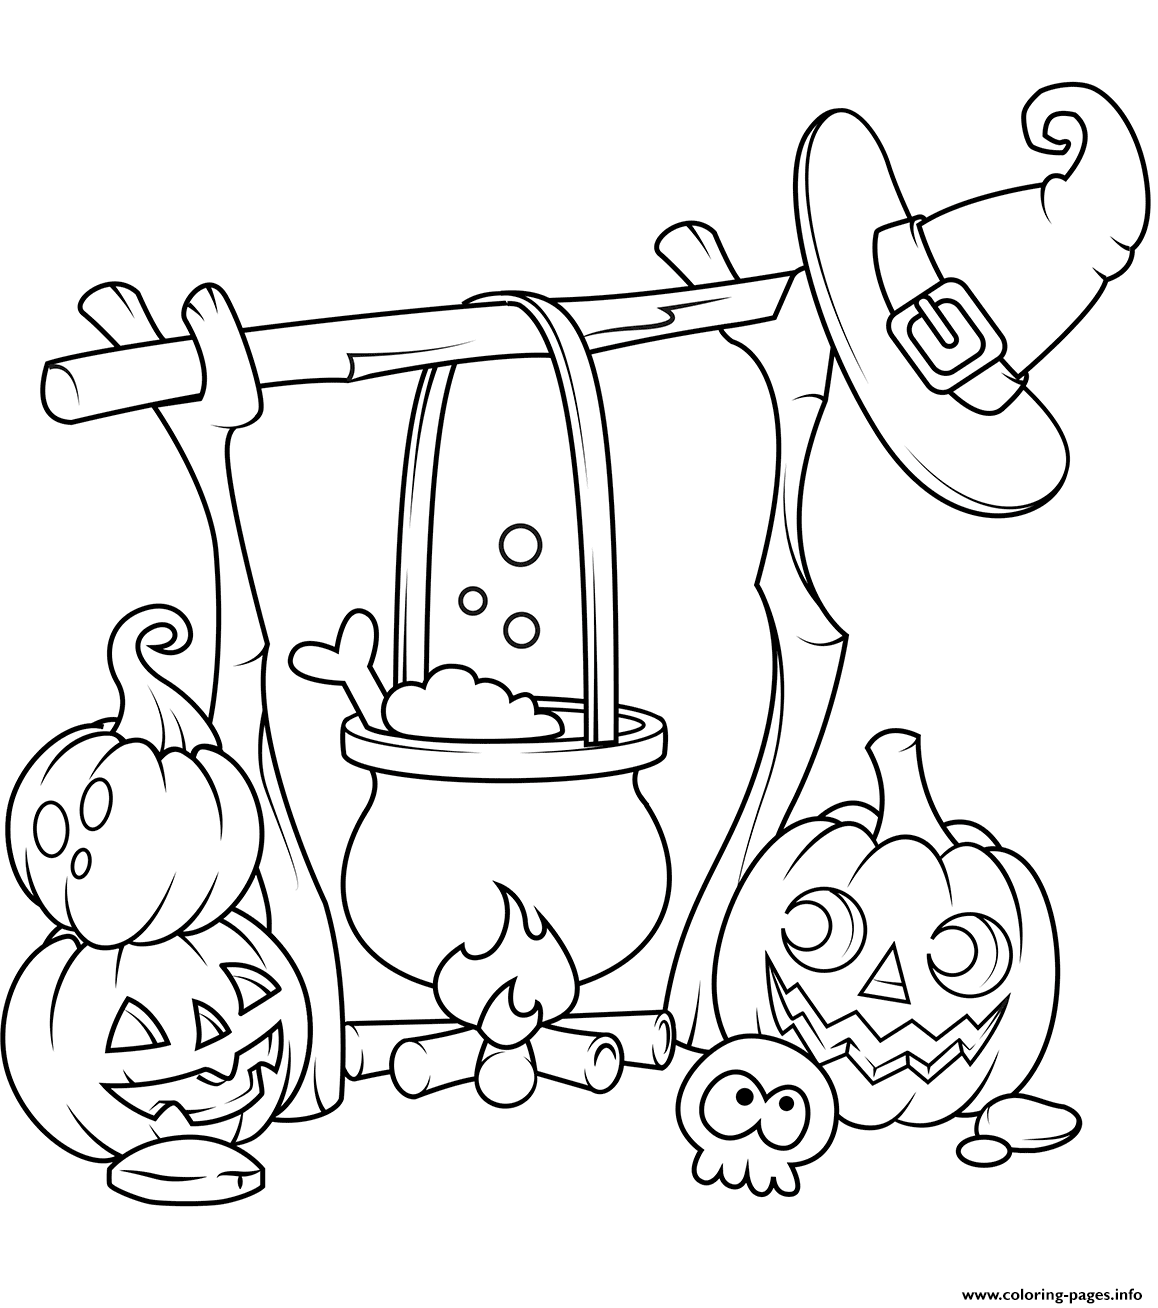 Jack O Lanterns And A Boiling Cauldron Halloween coloring pages